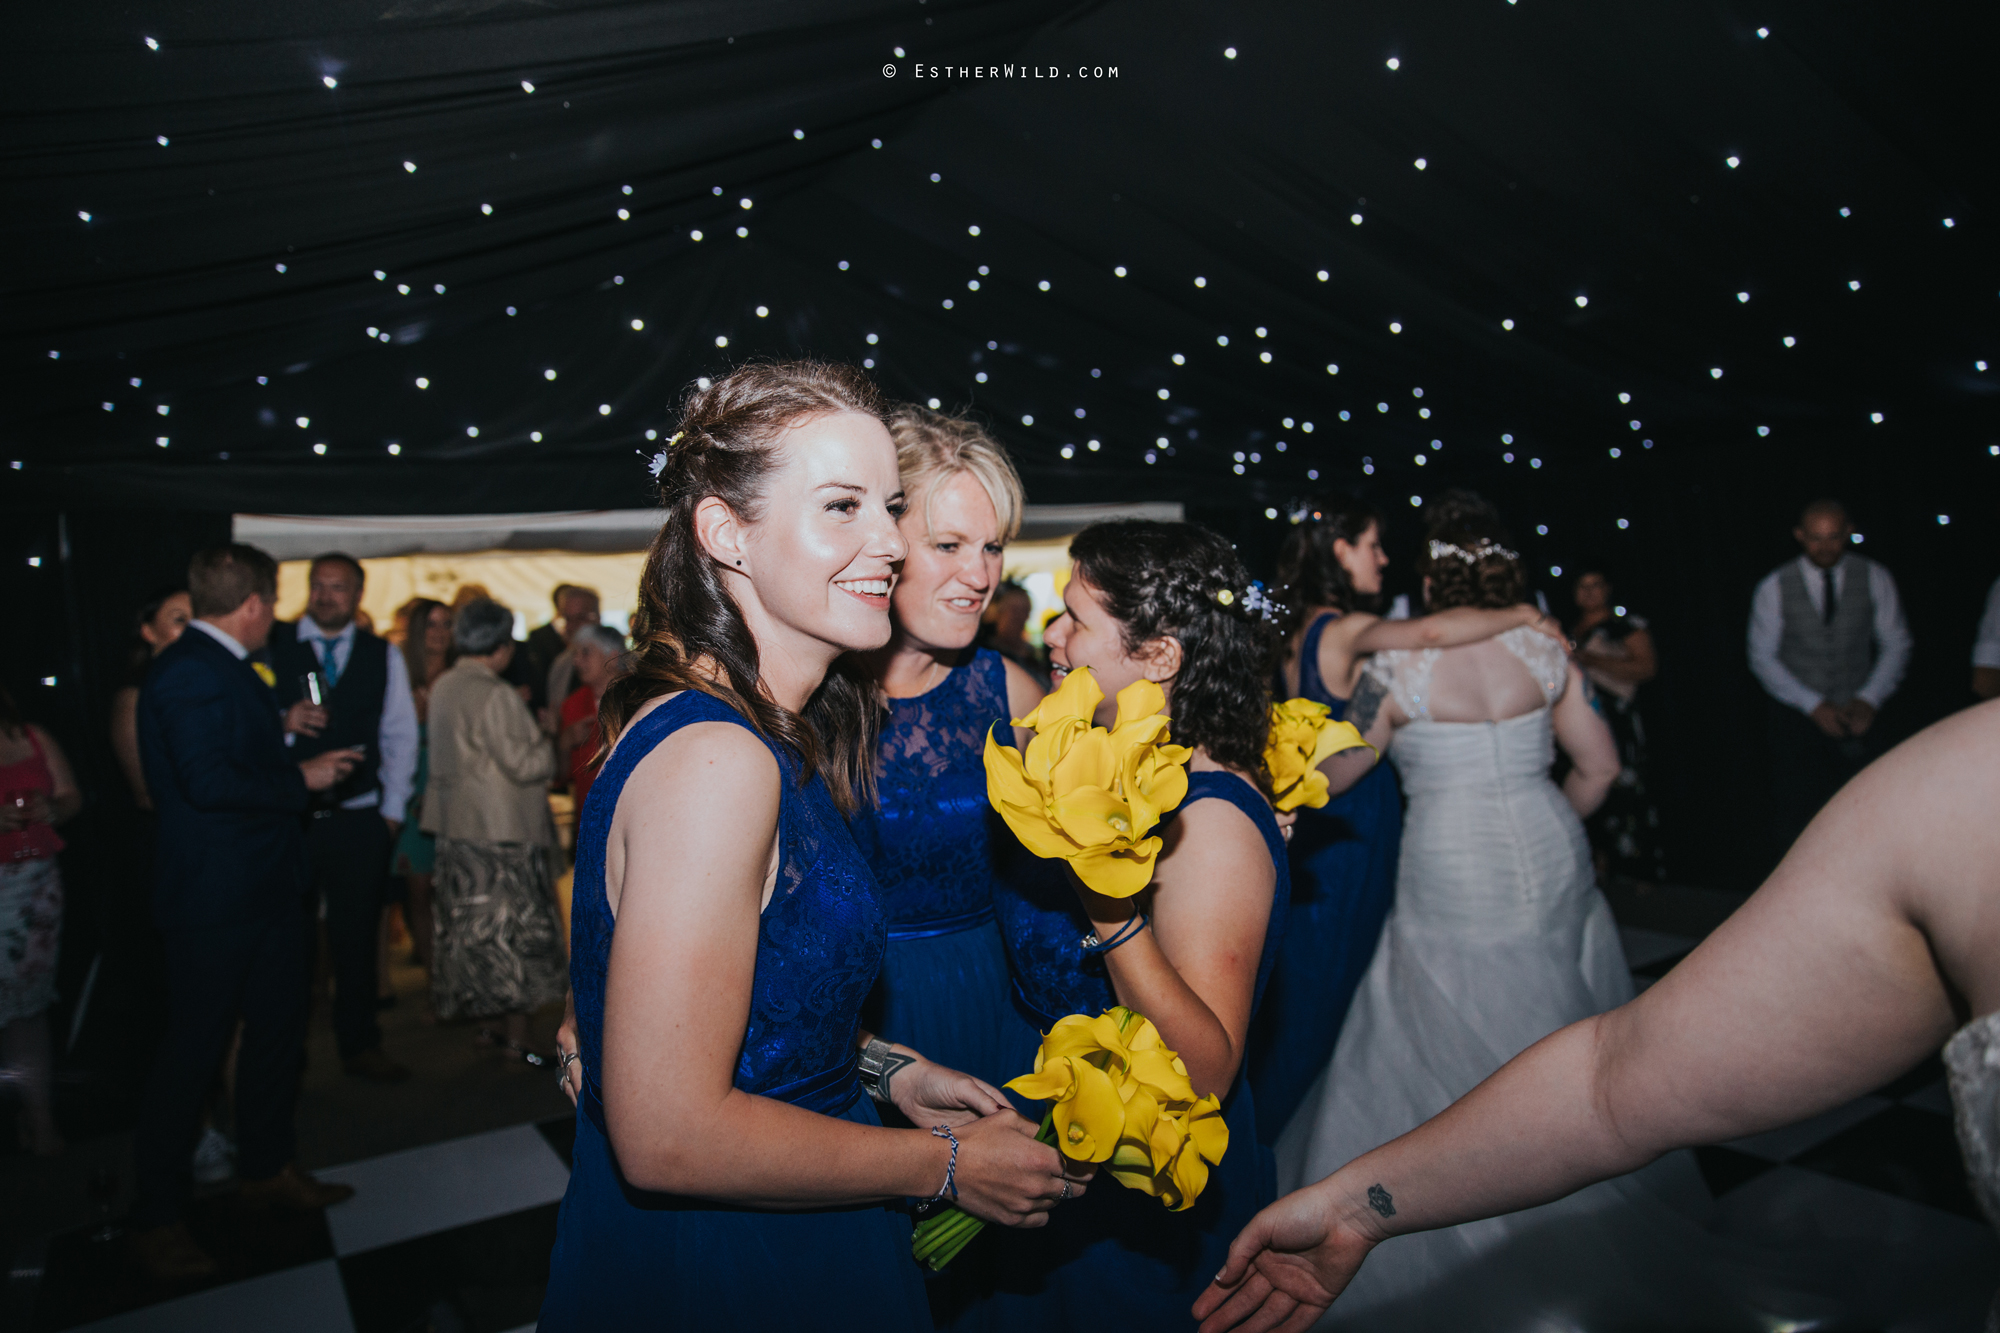 Old_Hall_Ely_Wedding_Esther_Wild_Photographer_IMG_2955.jpg